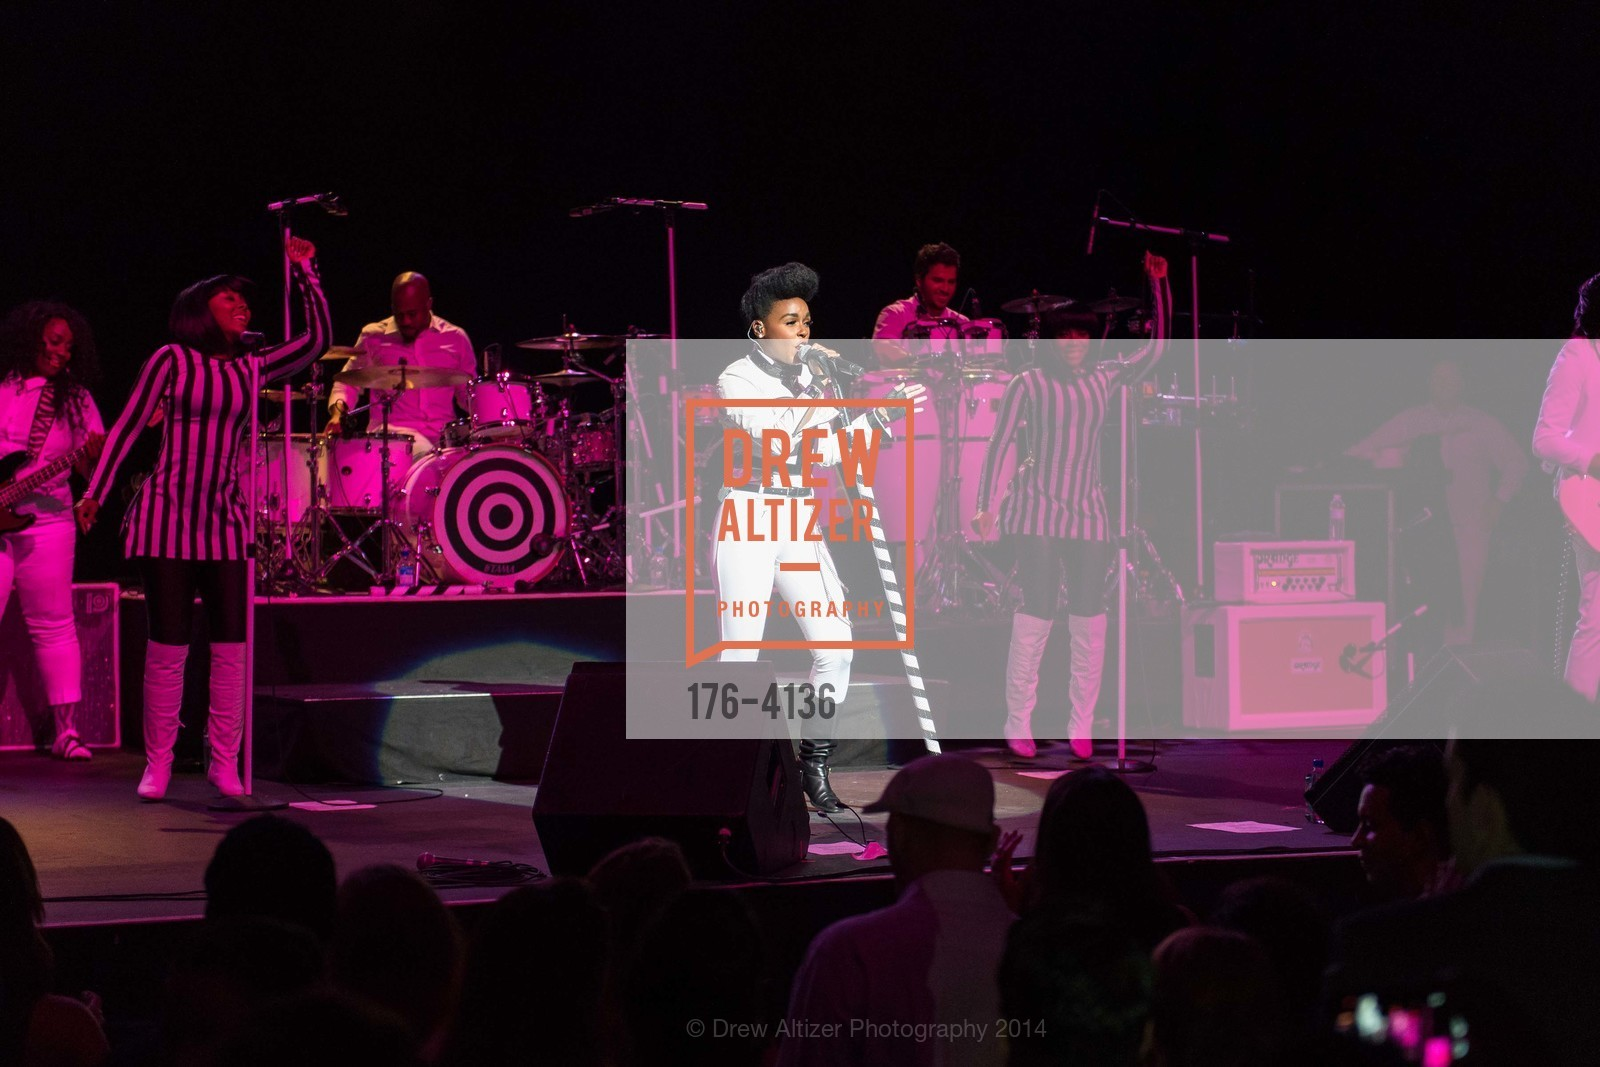 Performance By Janelle Monae, Photo #176-4136